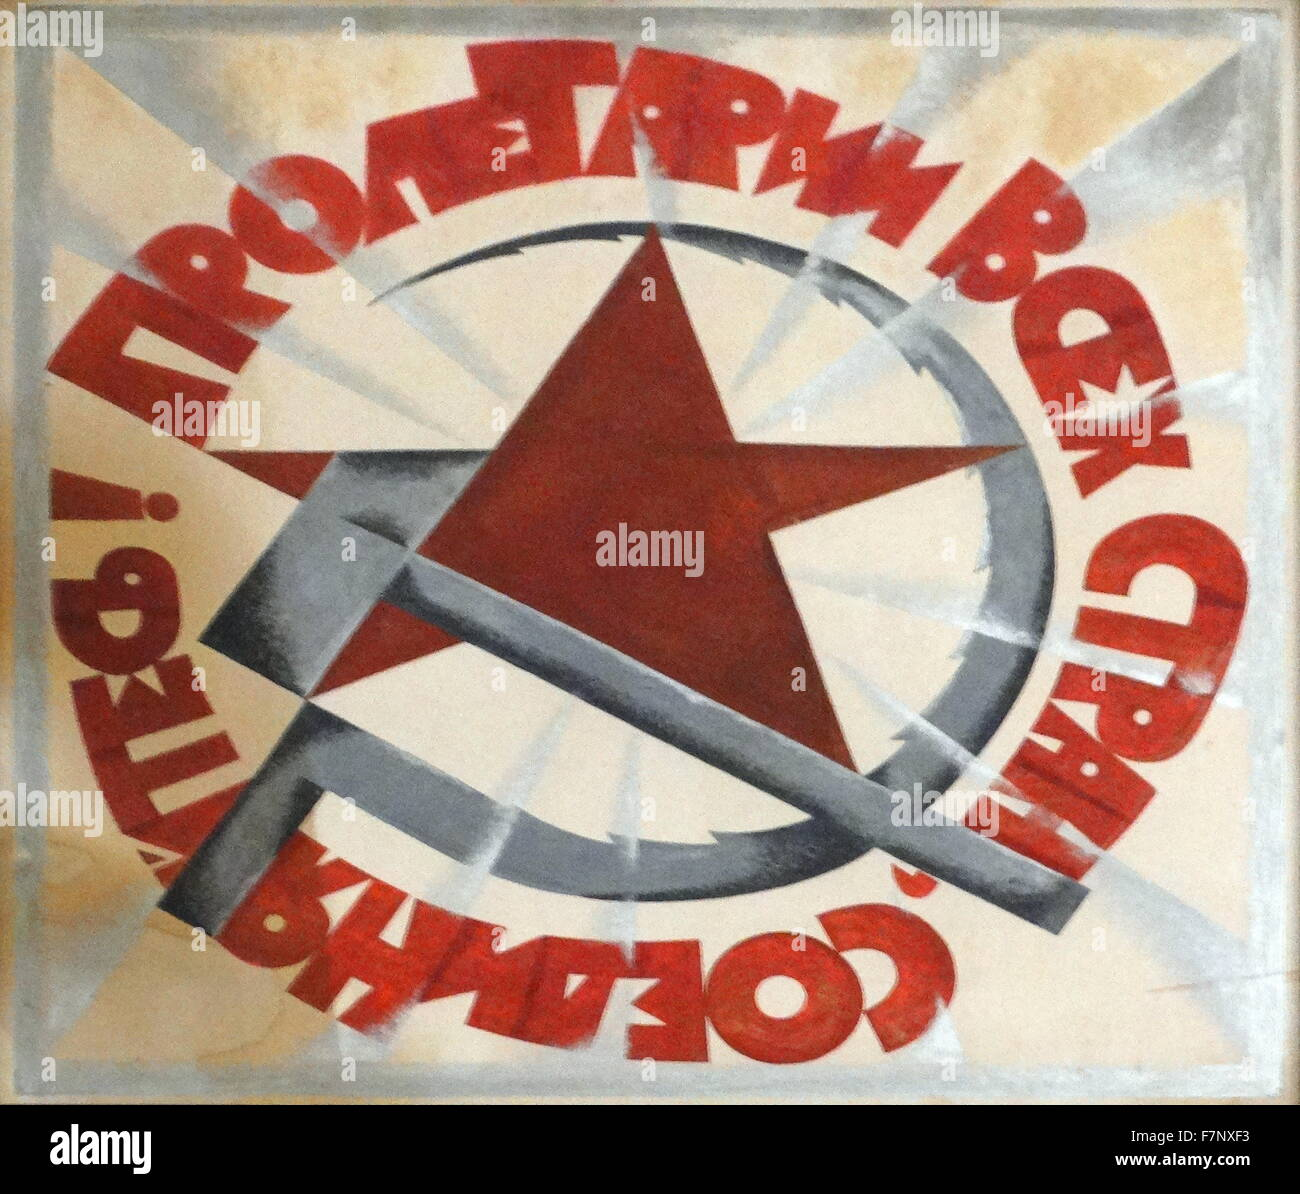 Russe, Soviet, affiches de propagande communiste, 1919 Photo Stock